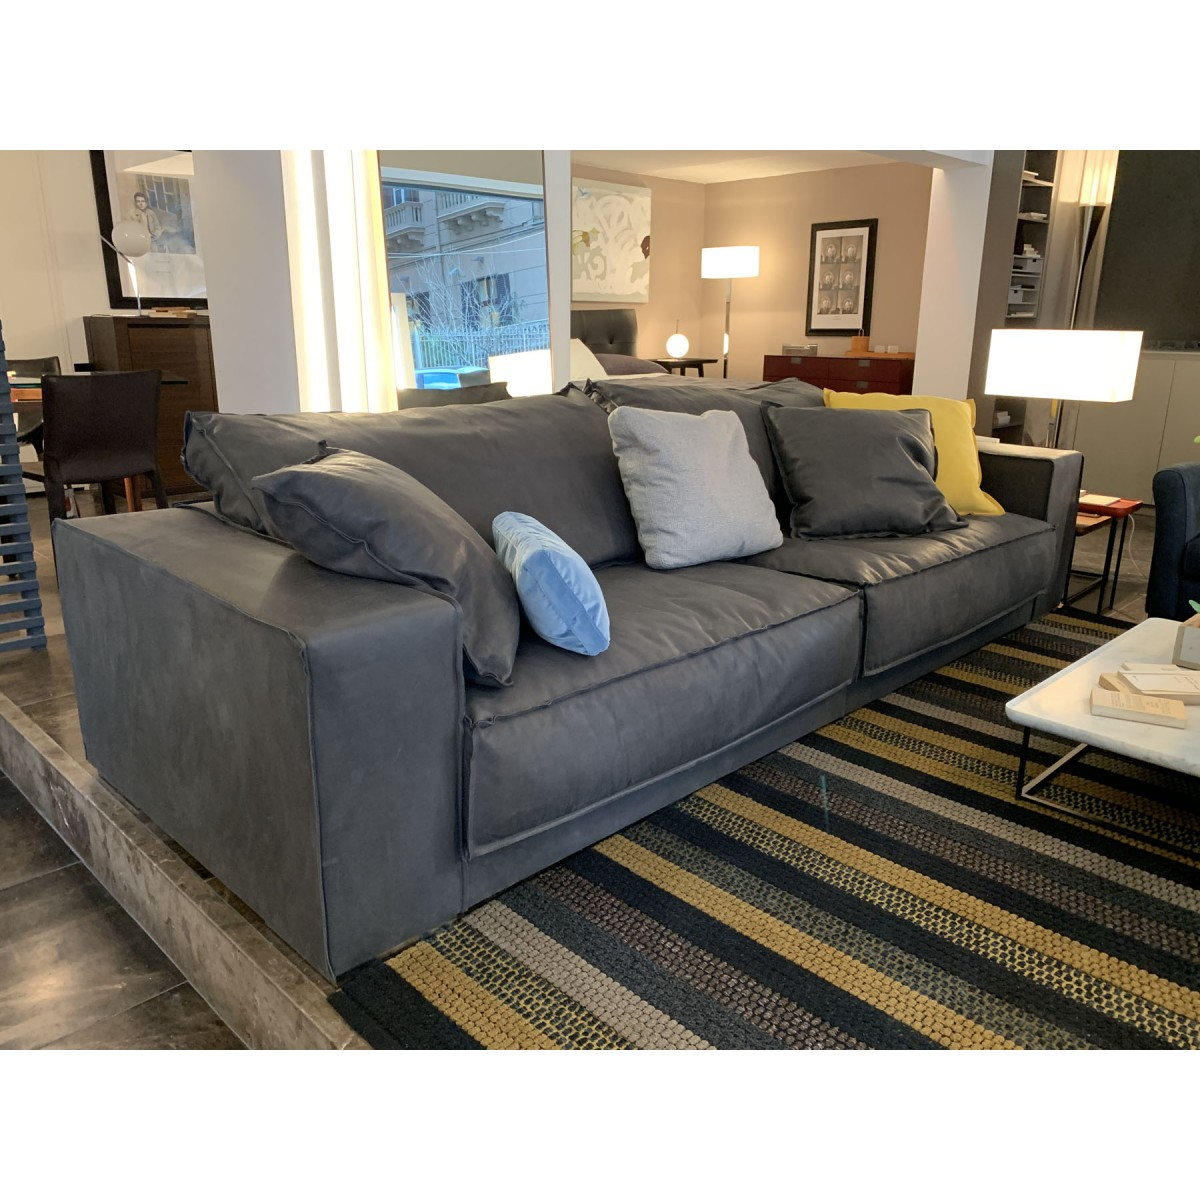 Full Size of Baxter Sofa Chester Moon Cena Furniture Harvey Norman Casablanca Viktor Criteria Collection Sale Budapest Tactile Couch Ez Living Made In Italy Paola Navone Sofa Baxter Sofa